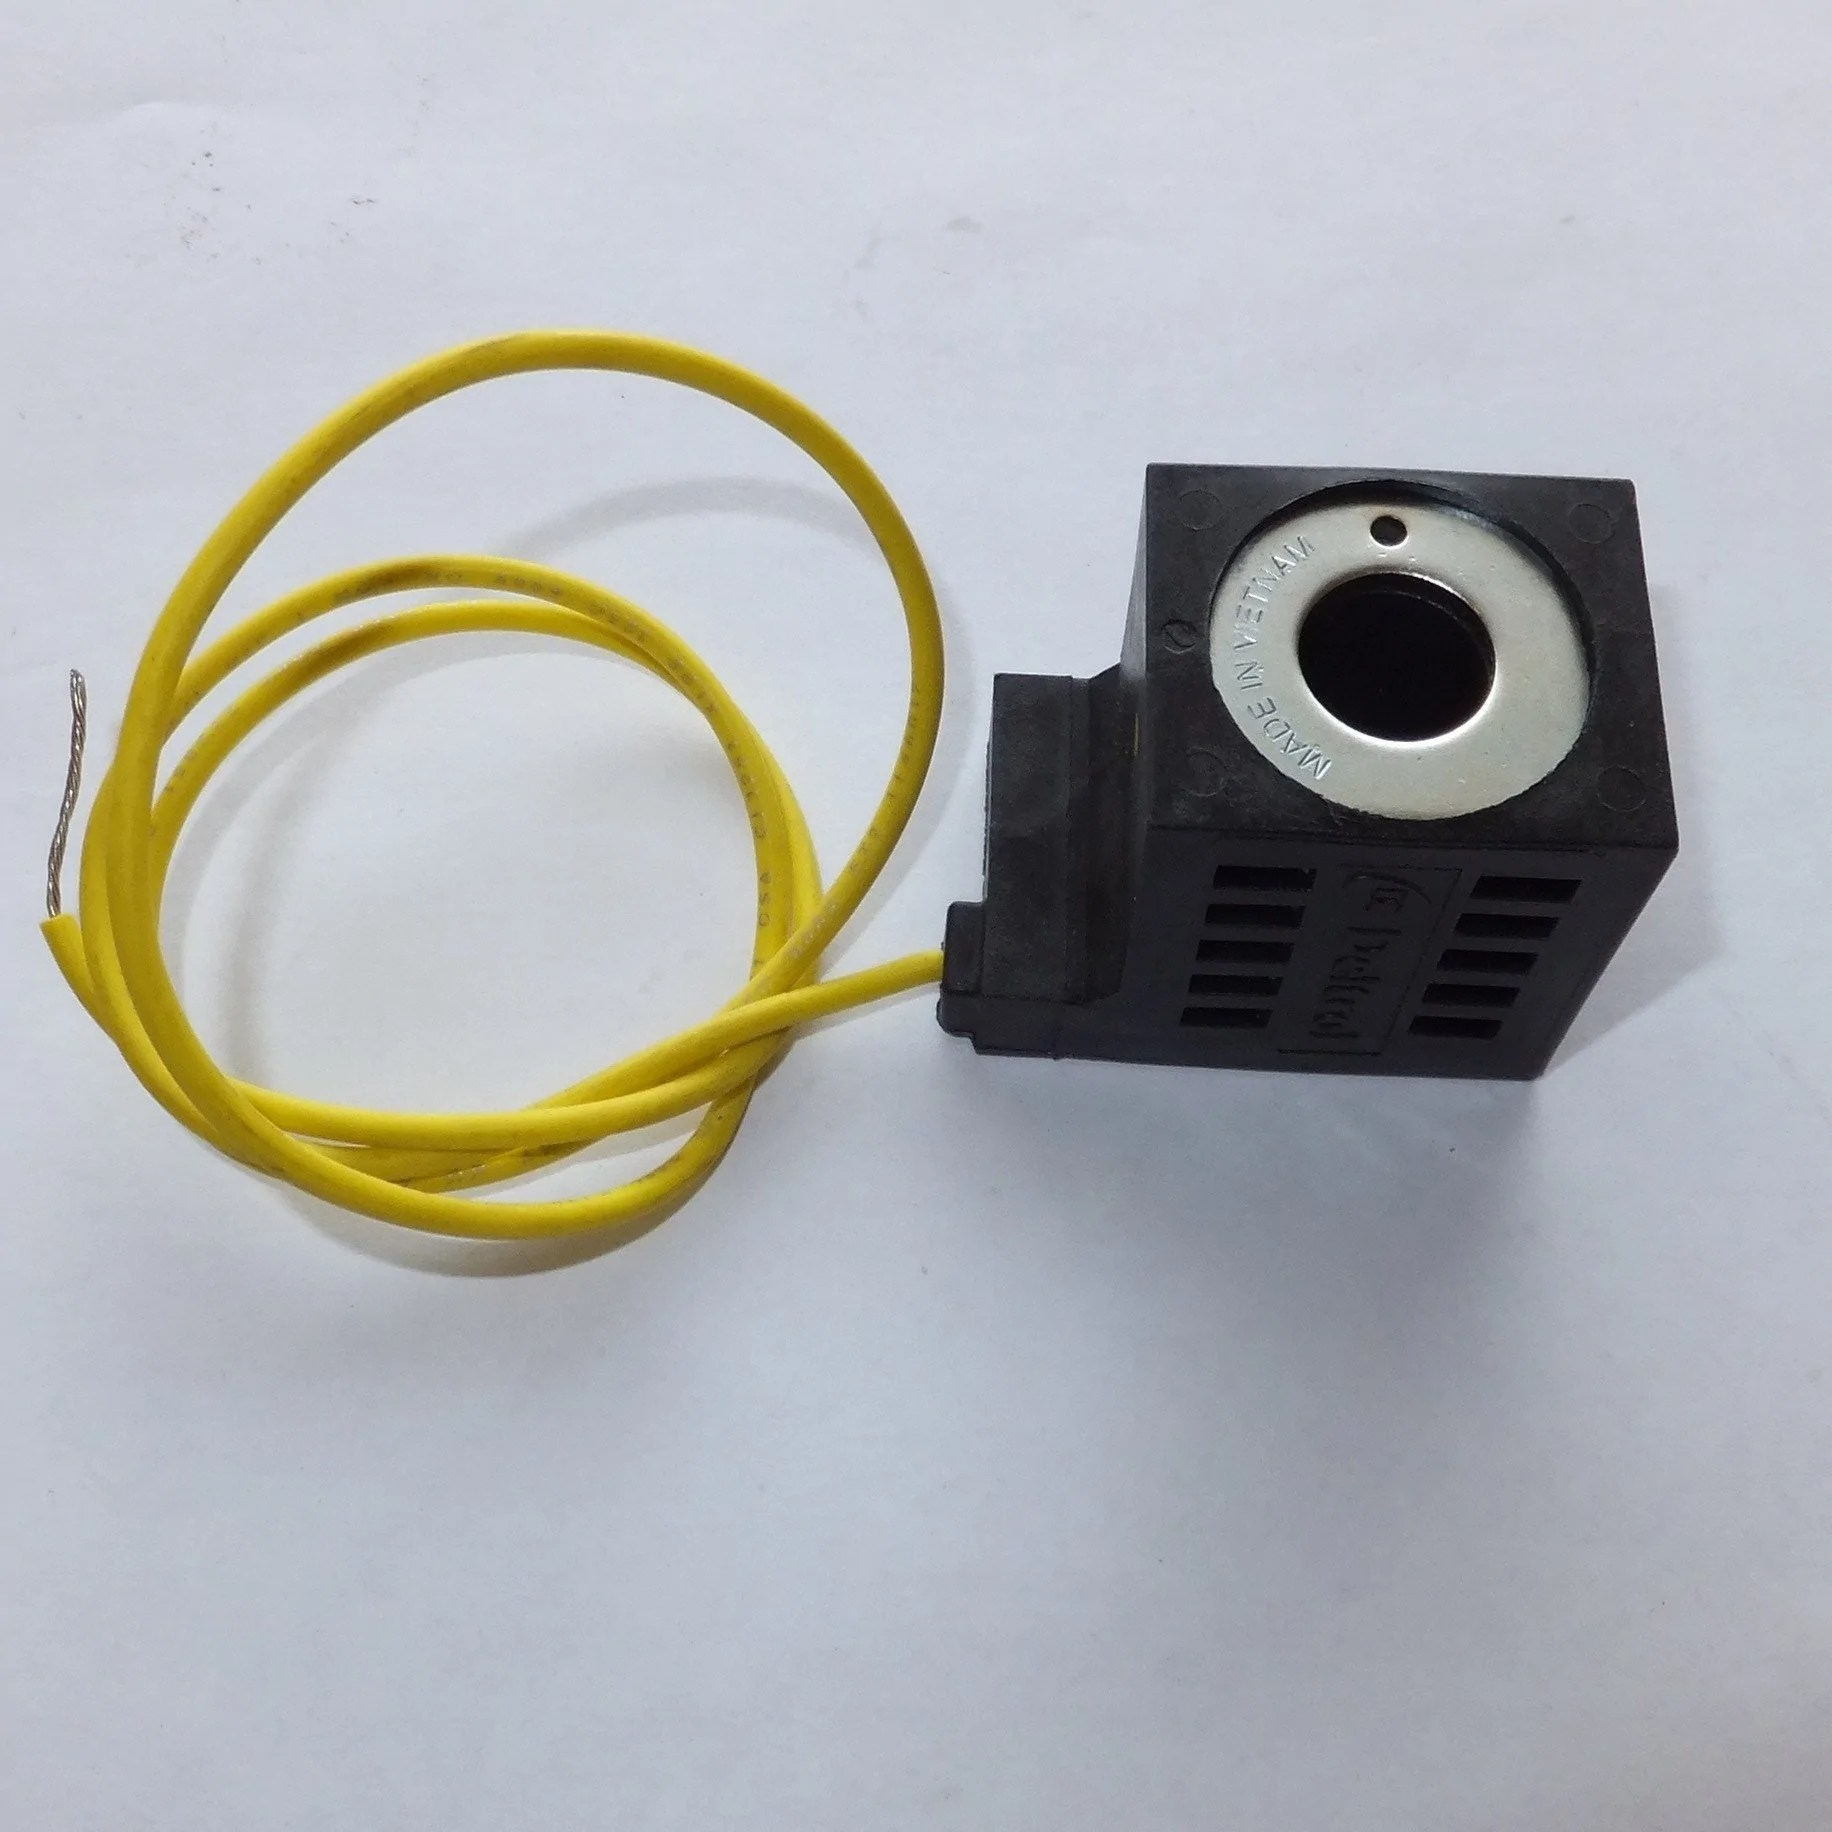 medium resolution of  valve coil 12v 1 wire for bucher pump m 3319 old style